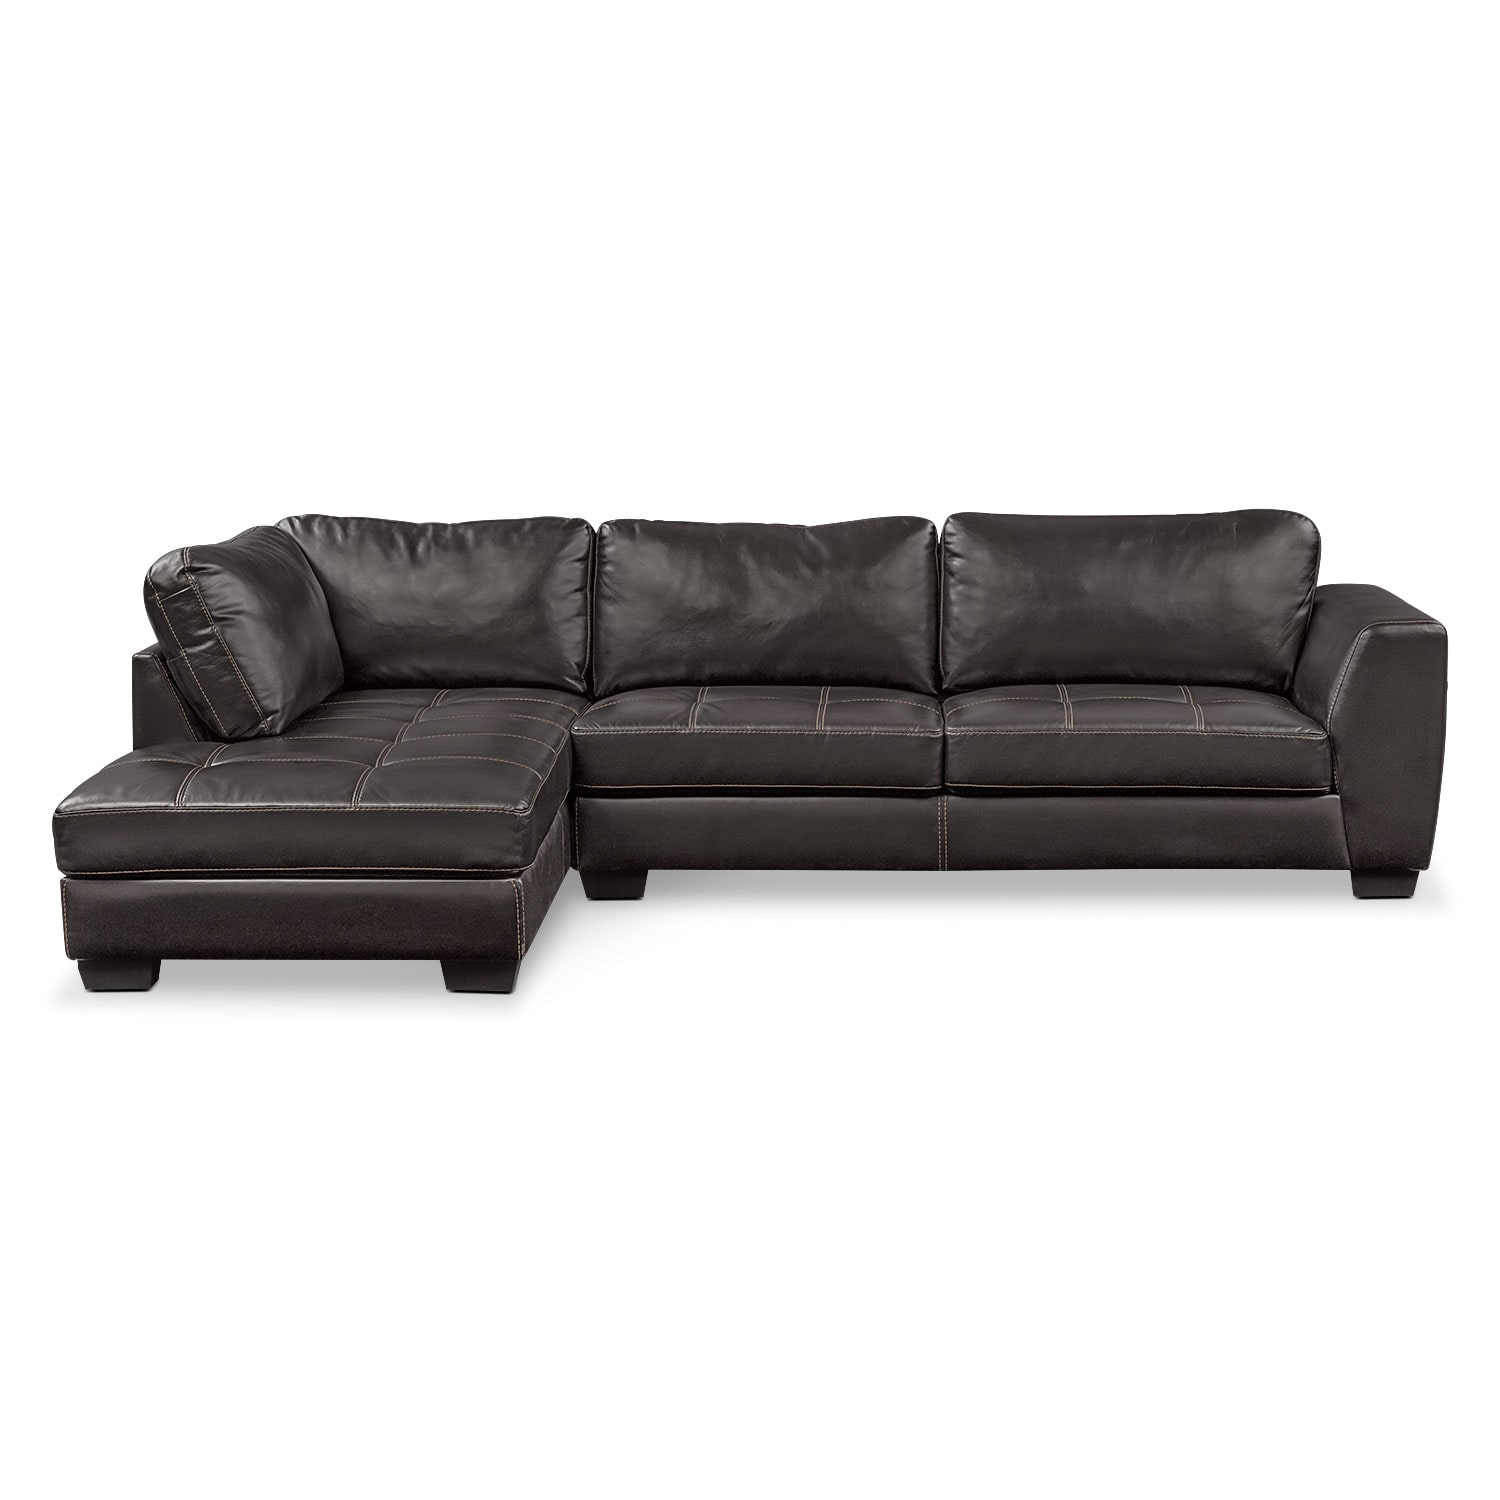 Santana 2-Piece Sectional with Left-Facing Chaise - Black